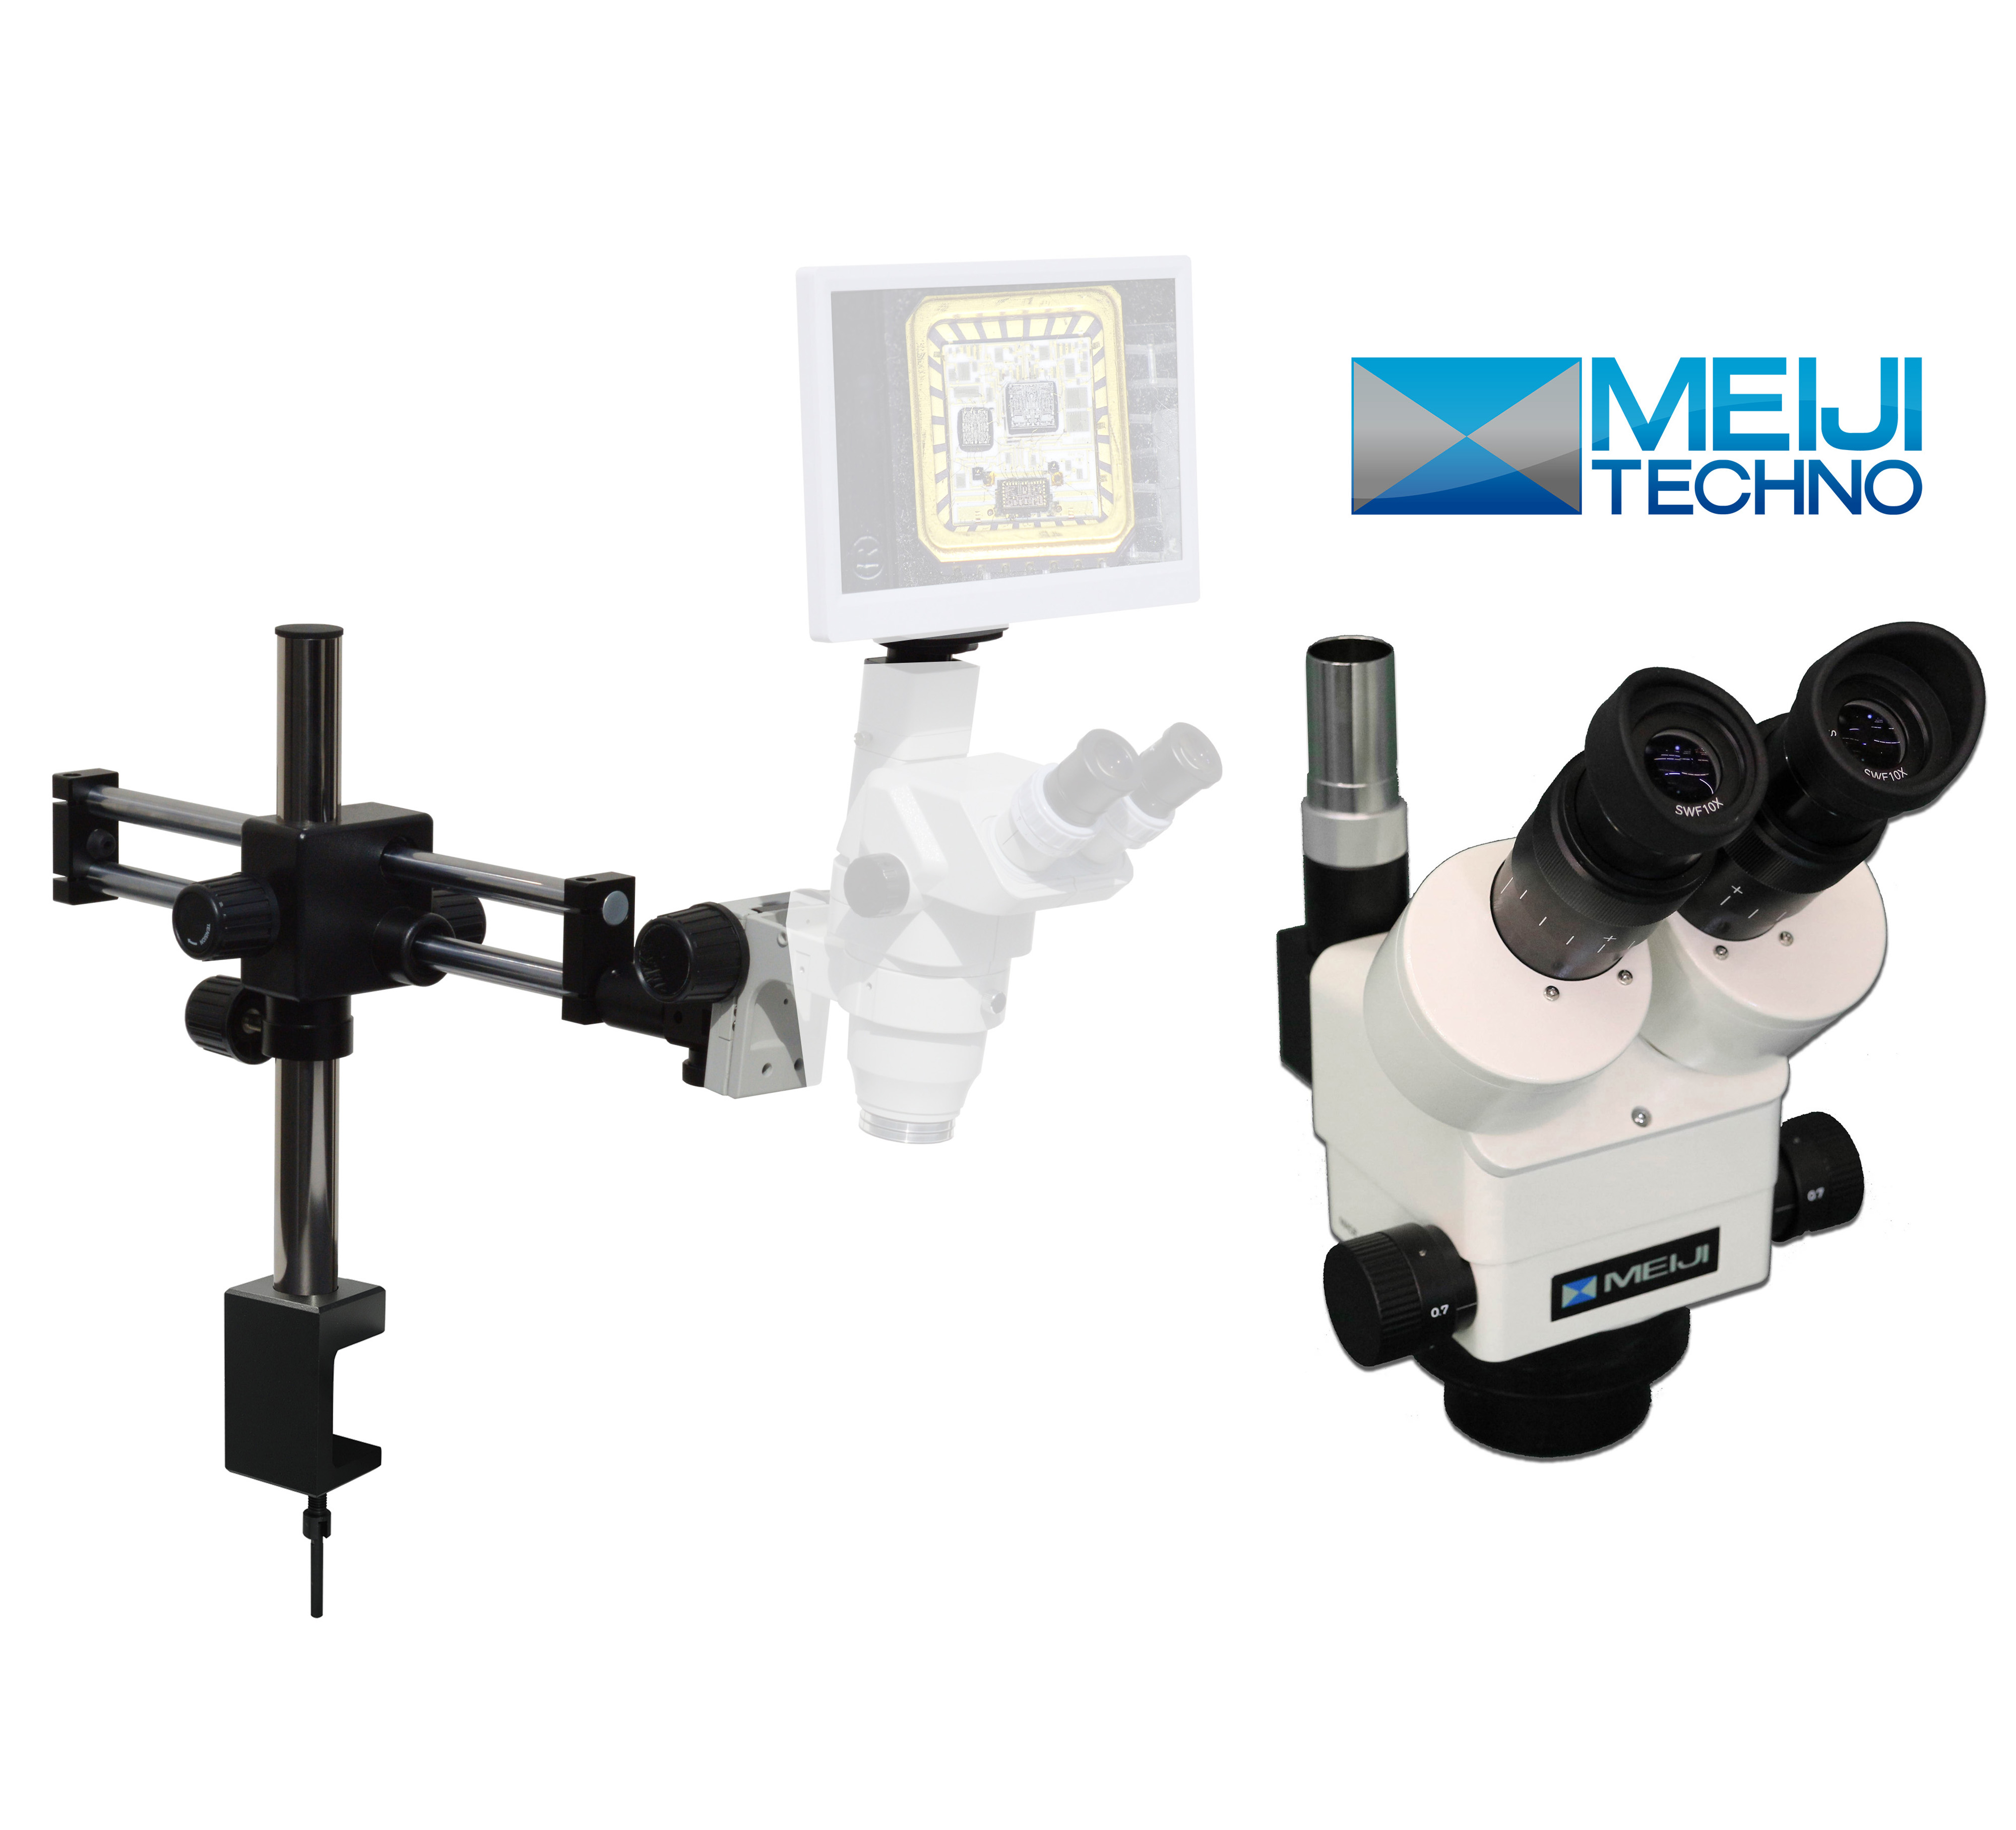 eTR800 Trinocular Meiji Techno Digital Microscope series 1.96x-270x [Starting at $1890]